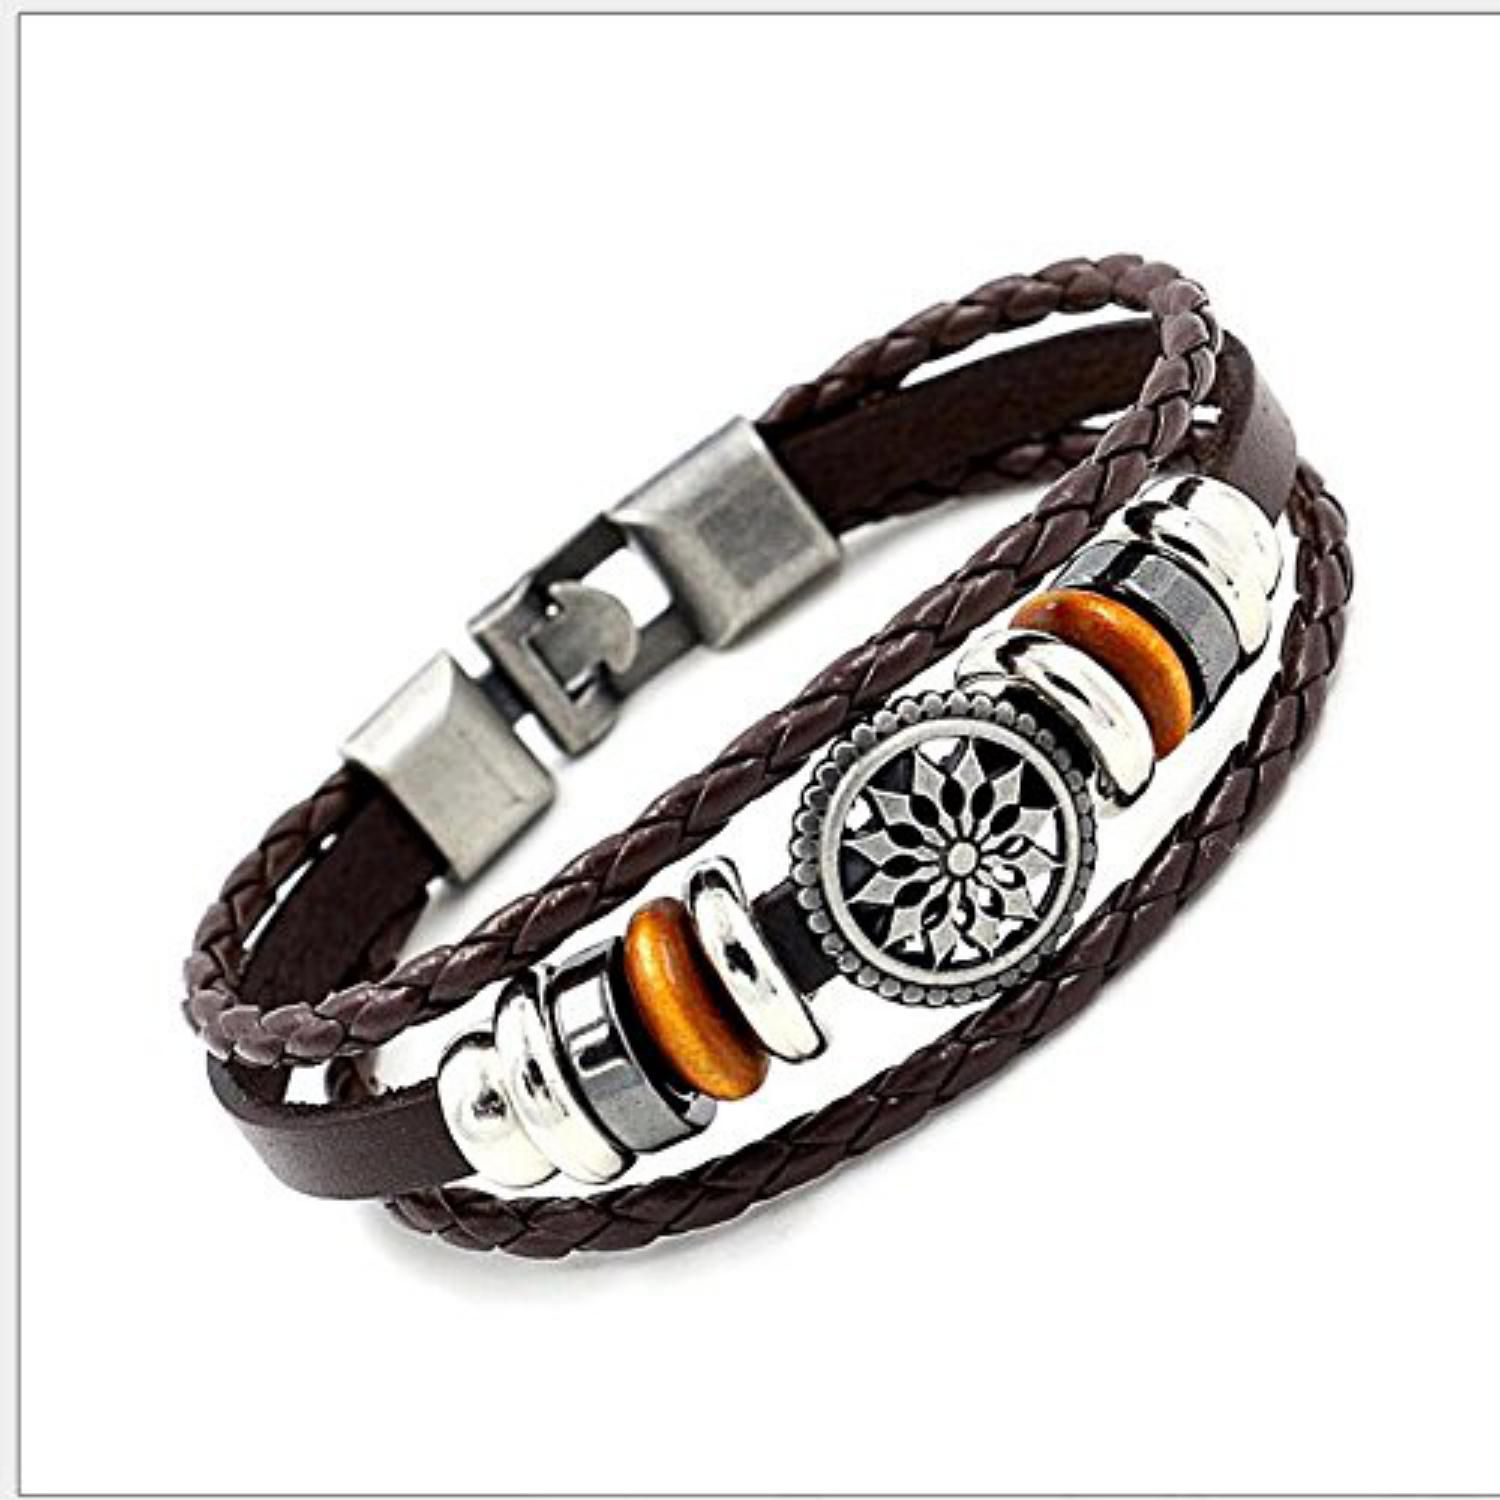 High School Edition Authentic Stylish Anchor Design Genuine Leather Bracelet For Men & Boys For Daily / Party / Gym Wear (BROWN)